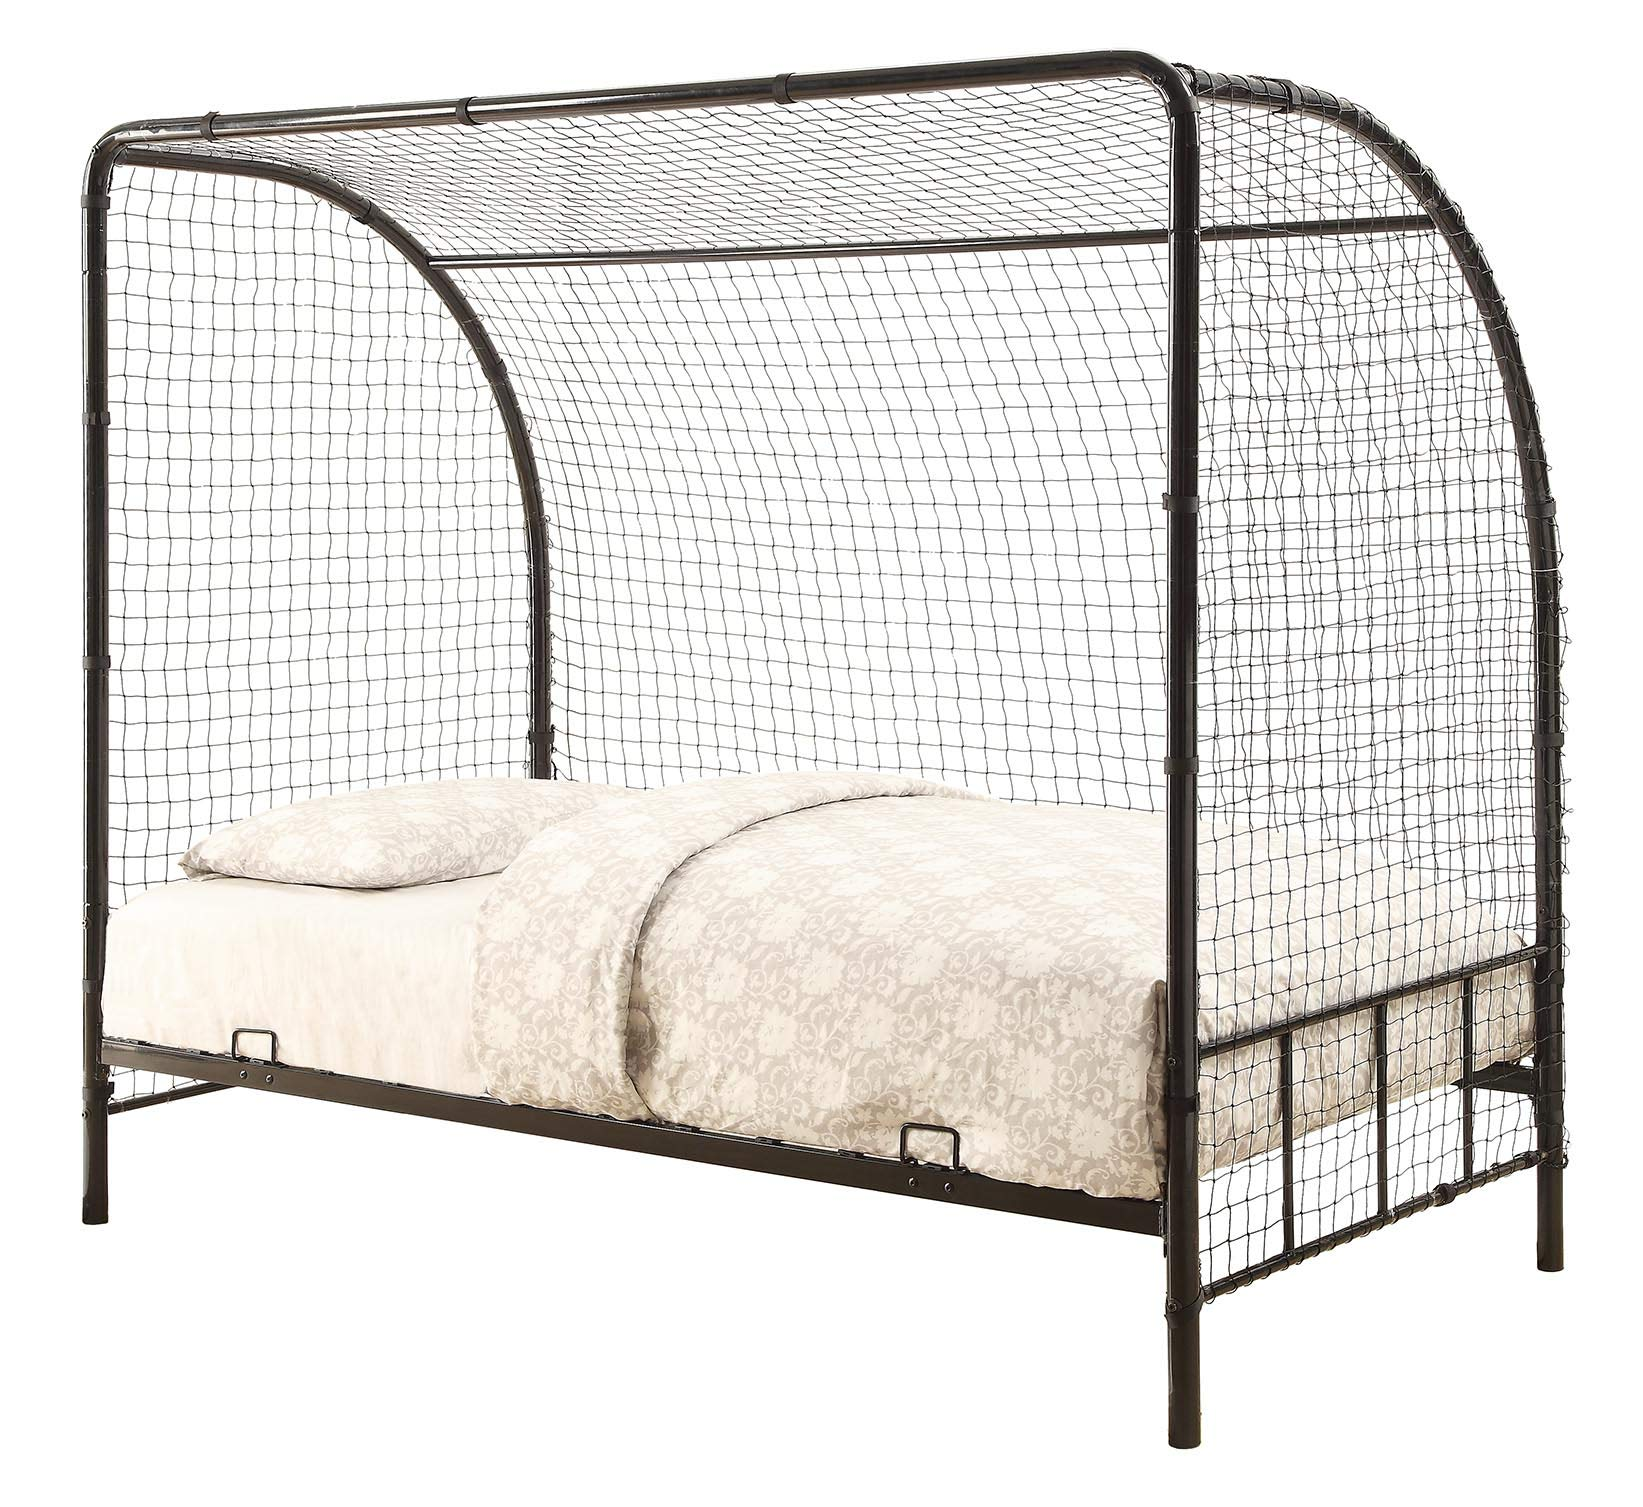 Coaster 301067-CO Bennette White Metal Soccer Goal Twin Bed, Twin Bed